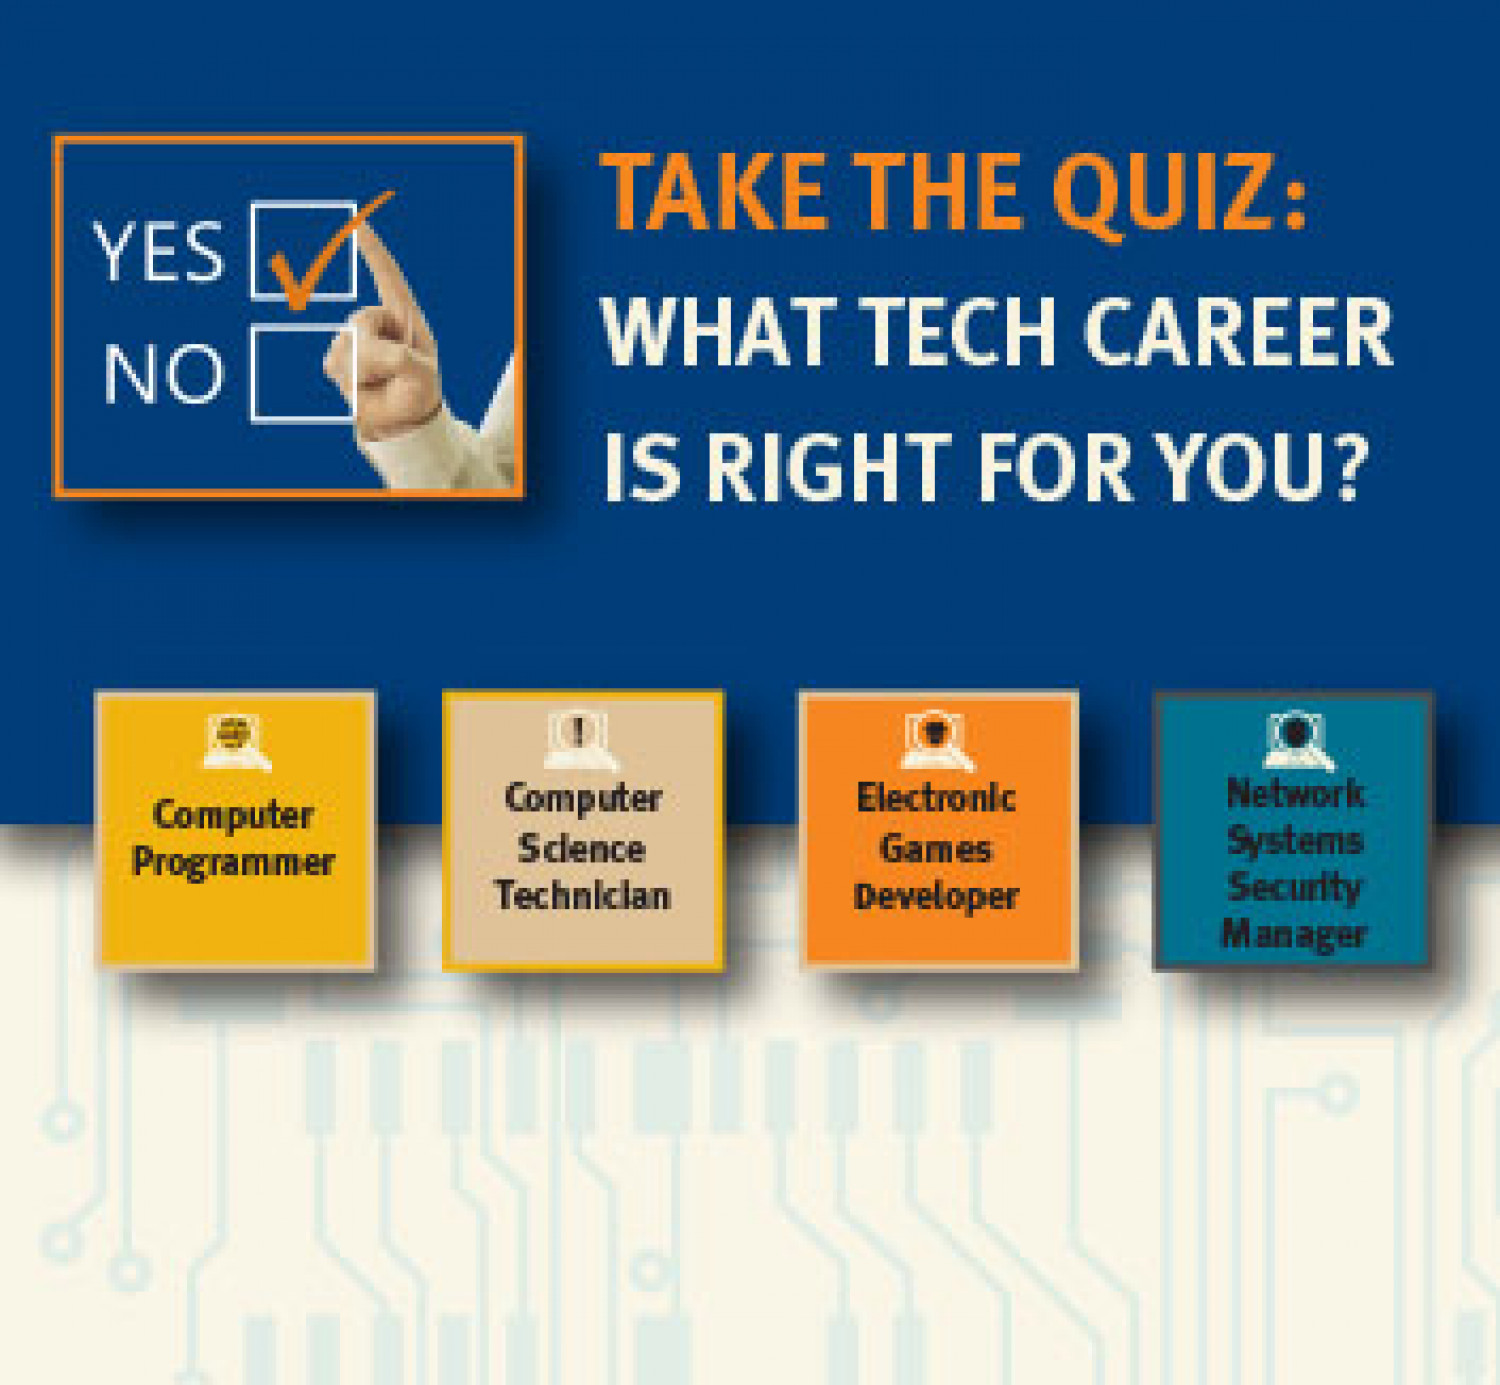 What Tech Career is Right for You? Infographic